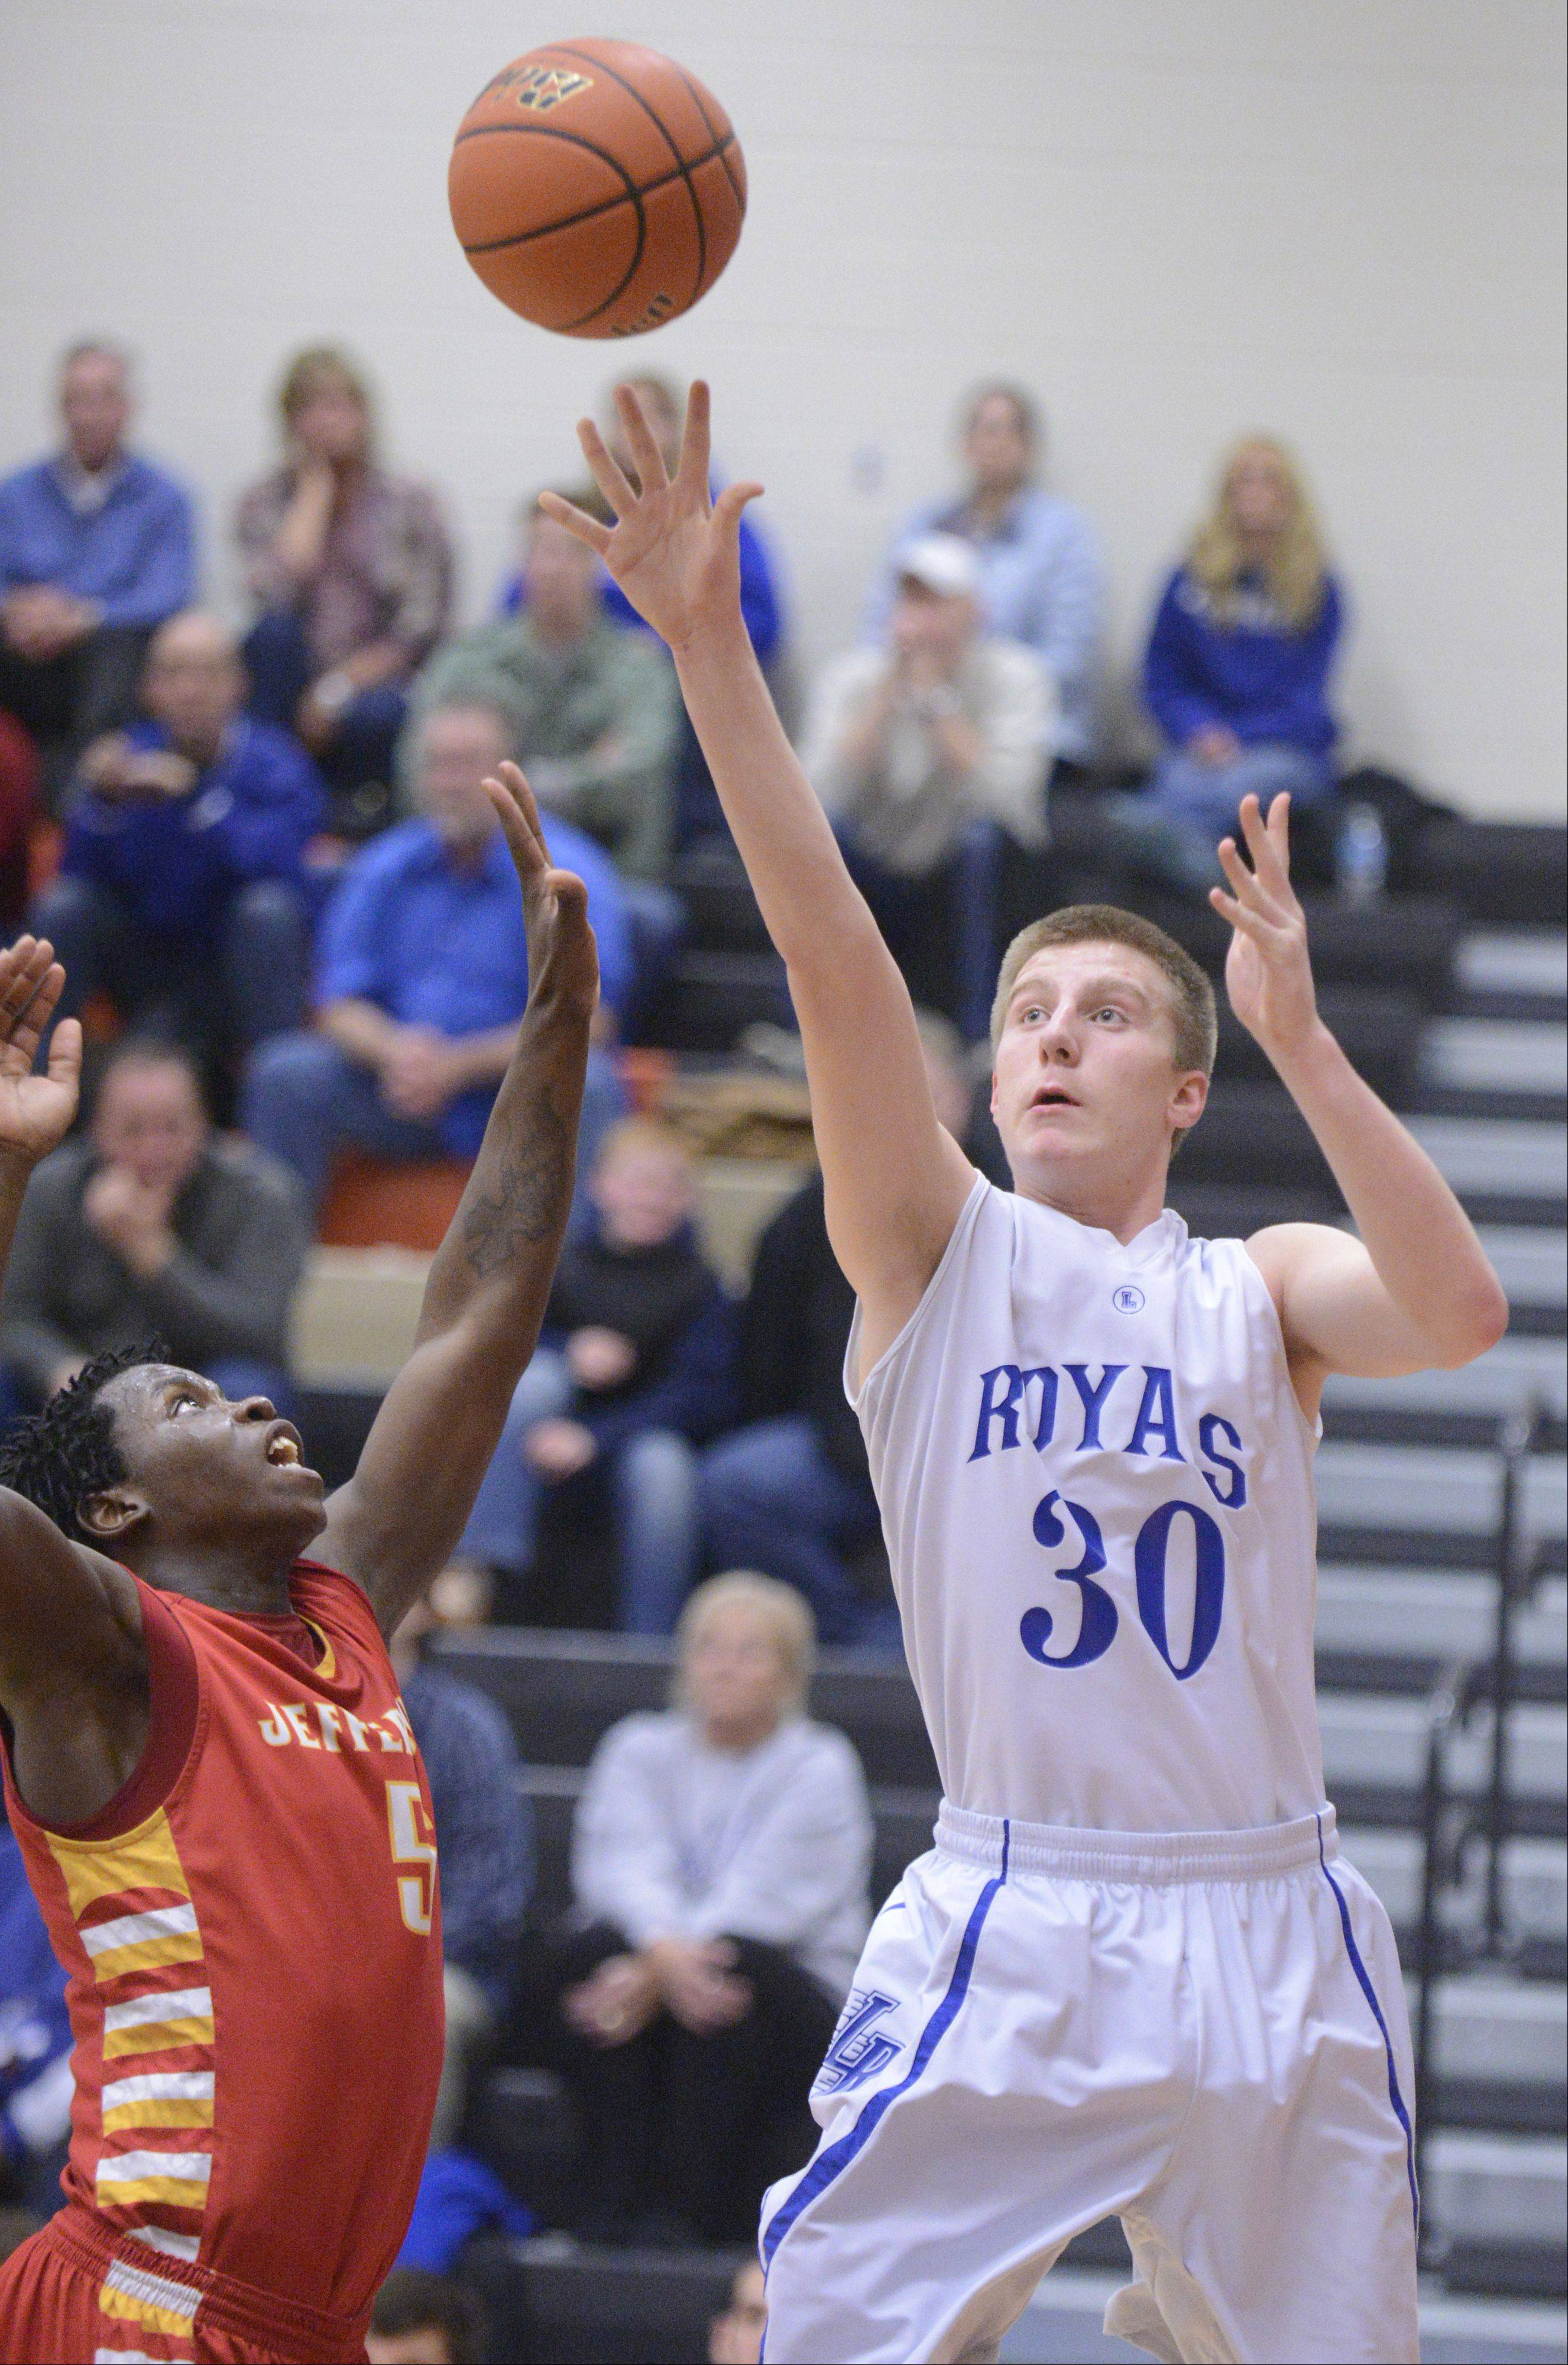 Larkin's Brayden Royse shoots over Rockford Jefferson's Montel Brown in the third quarter of the Class 4A DeKalb sectional semifinals on Wednesday, March 6.